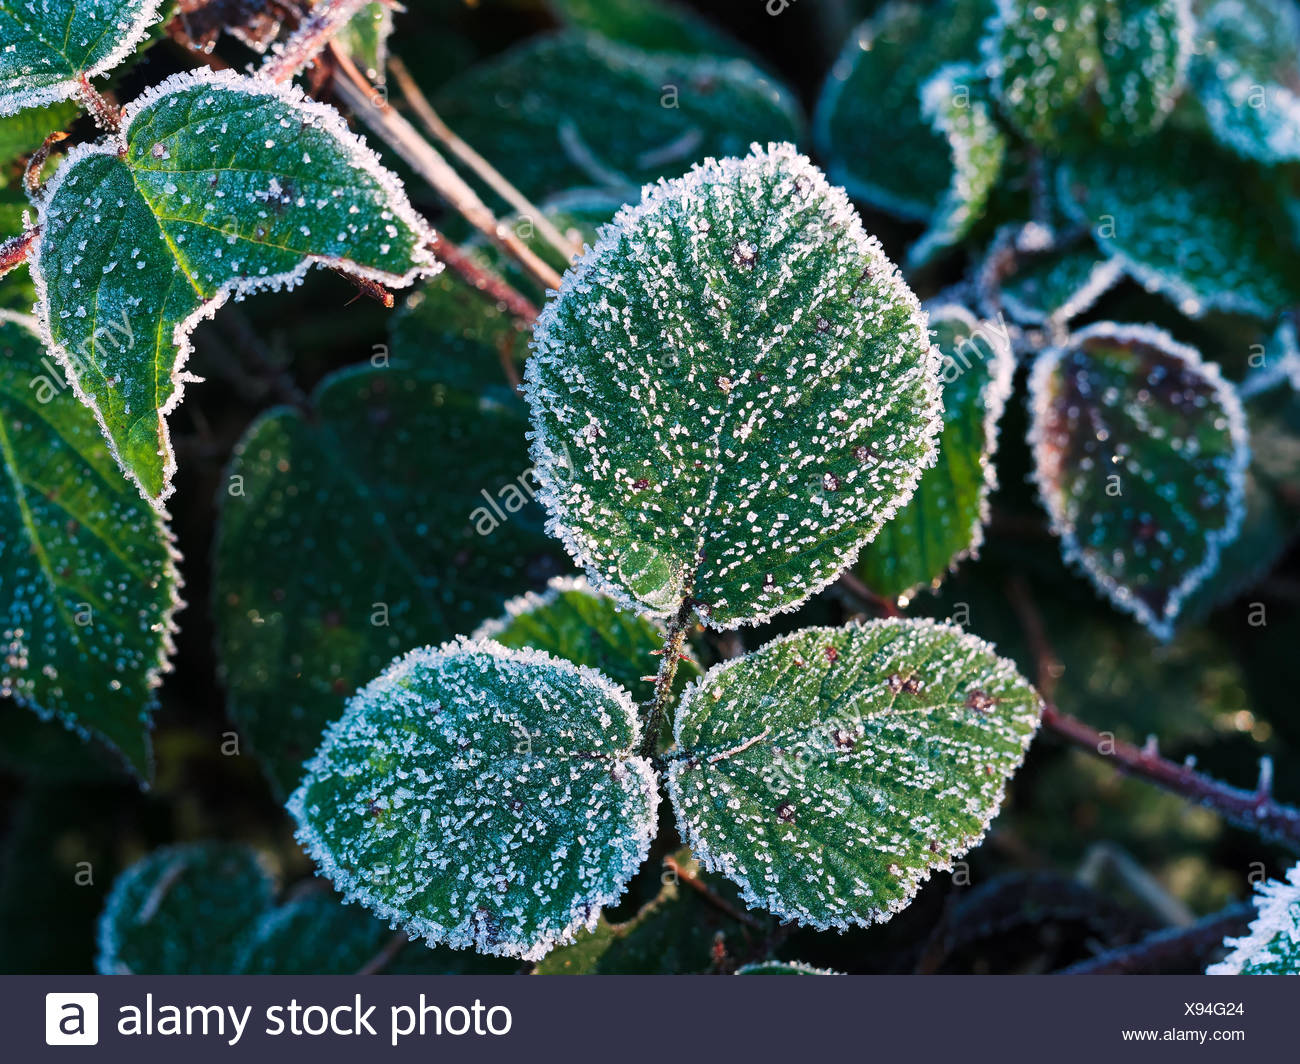 Blackberry leaf with hoarfrost - Stock Image